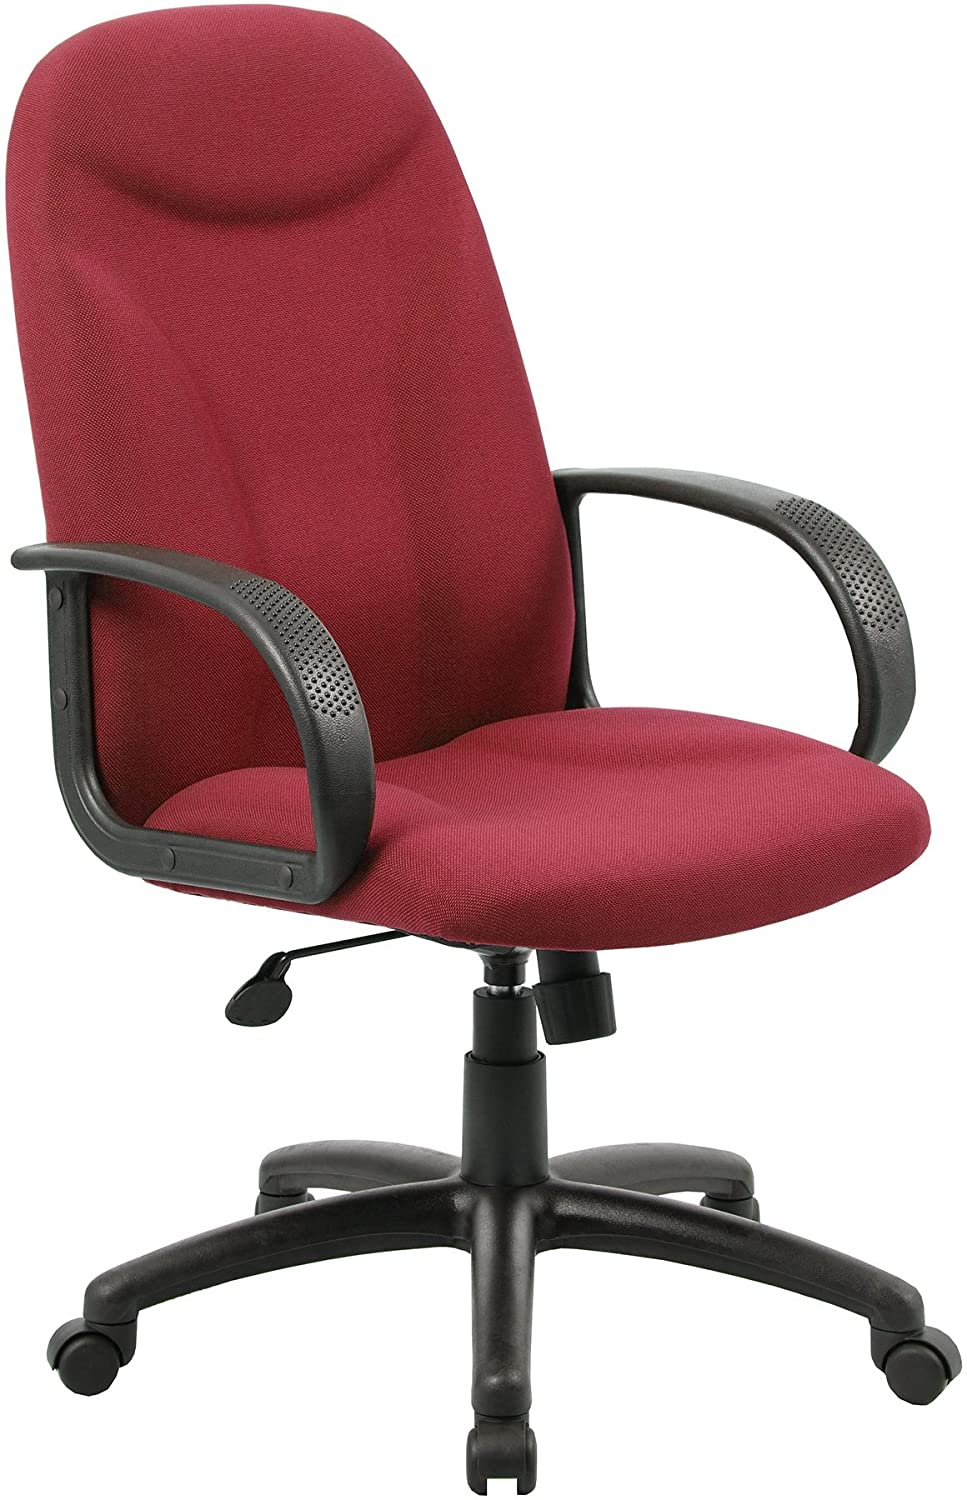 Cool Perth High Back Executive Fabric Office Chair Download Free Architecture Designs Rallybritishbridgeorg